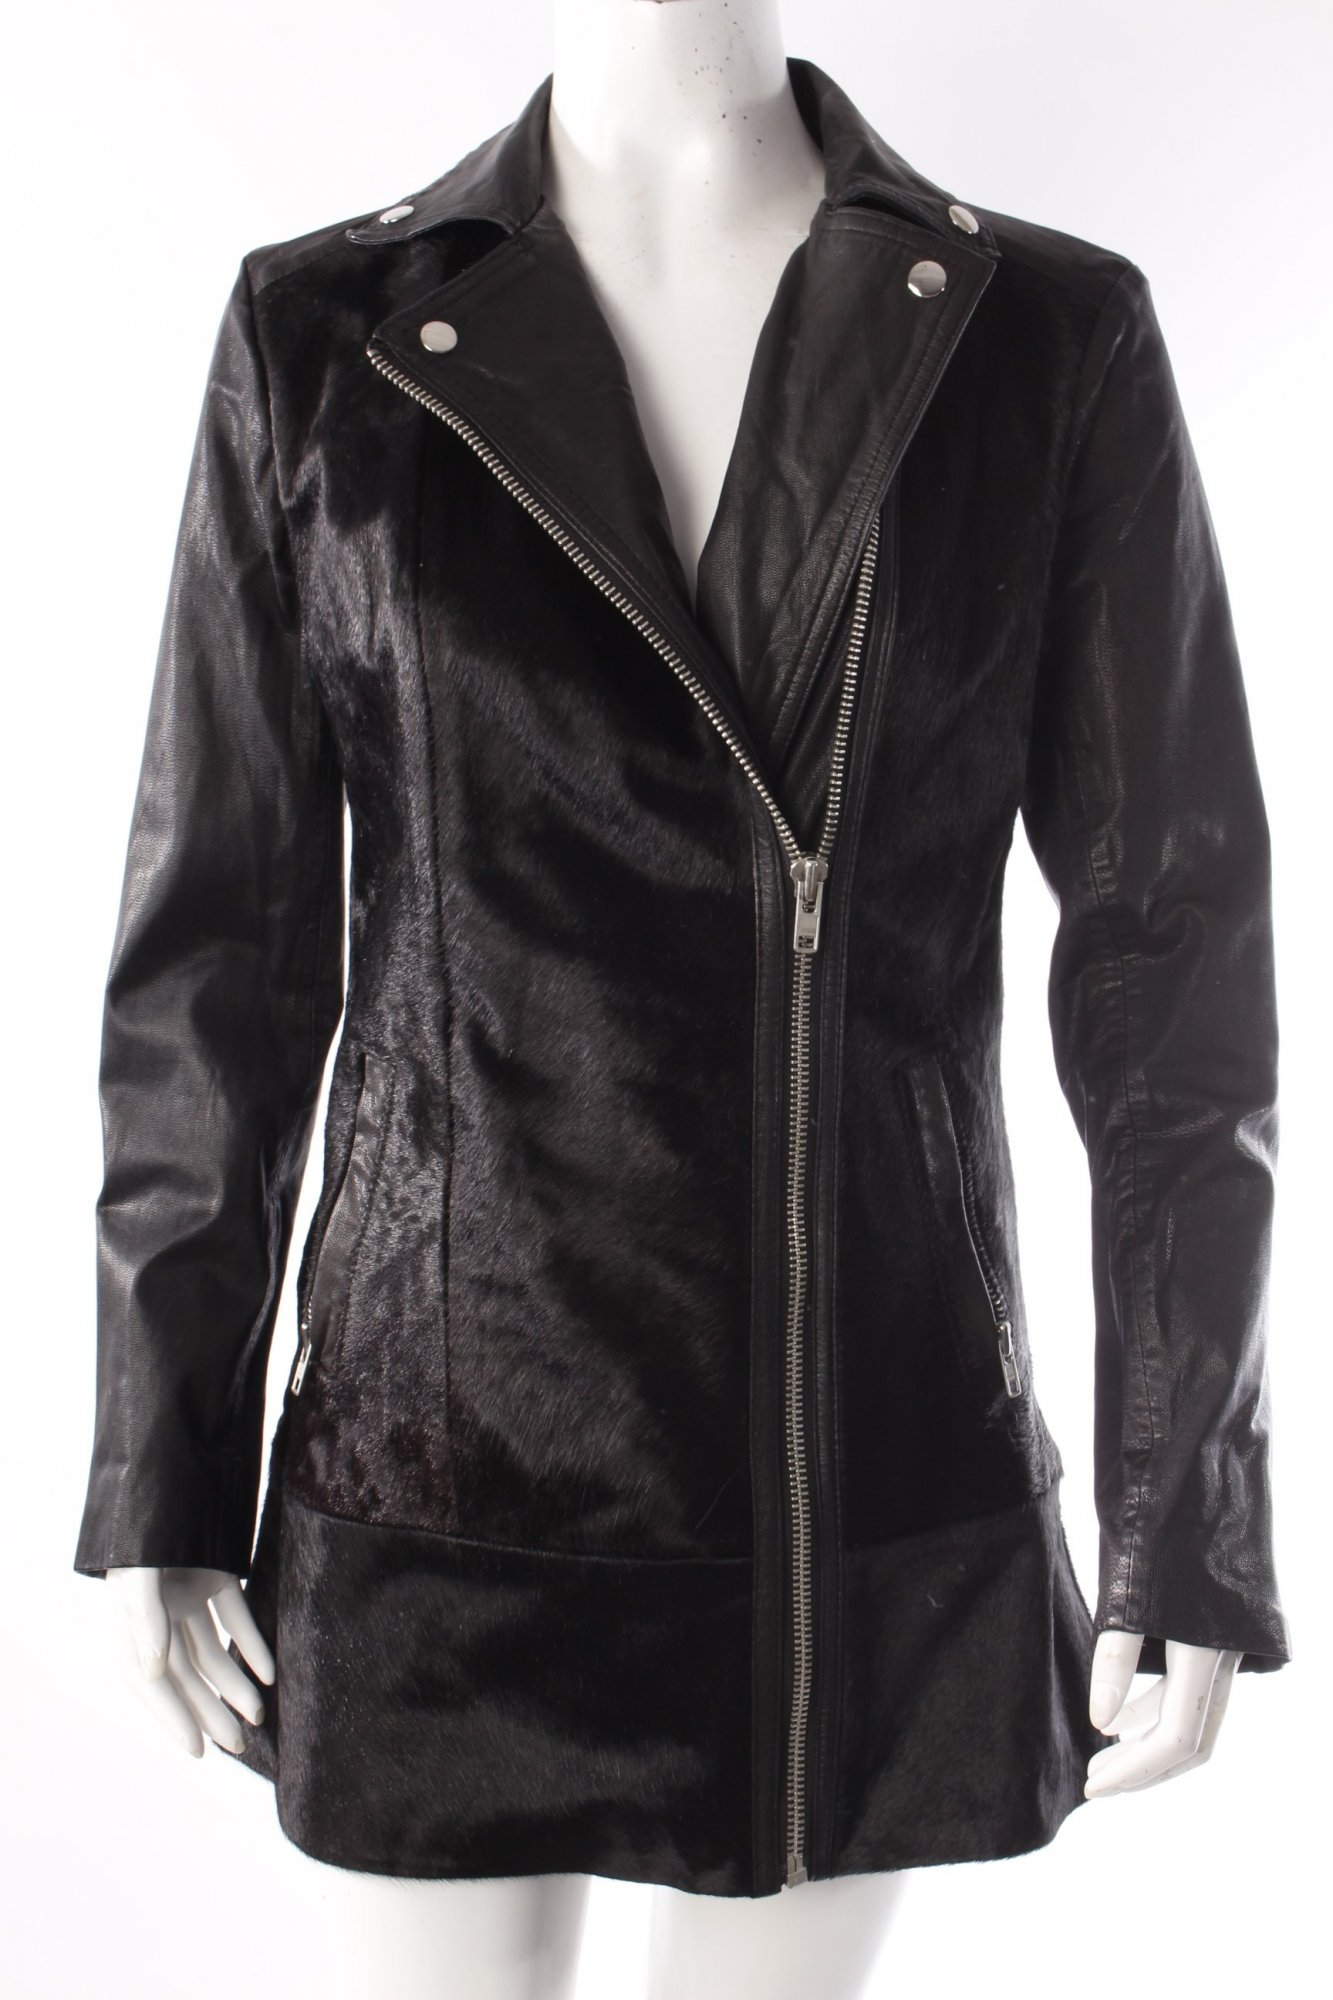 muubaa bikerjacke mit fell damen gr de 36 schwarz jacke. Black Bedroom Furniture Sets. Home Design Ideas